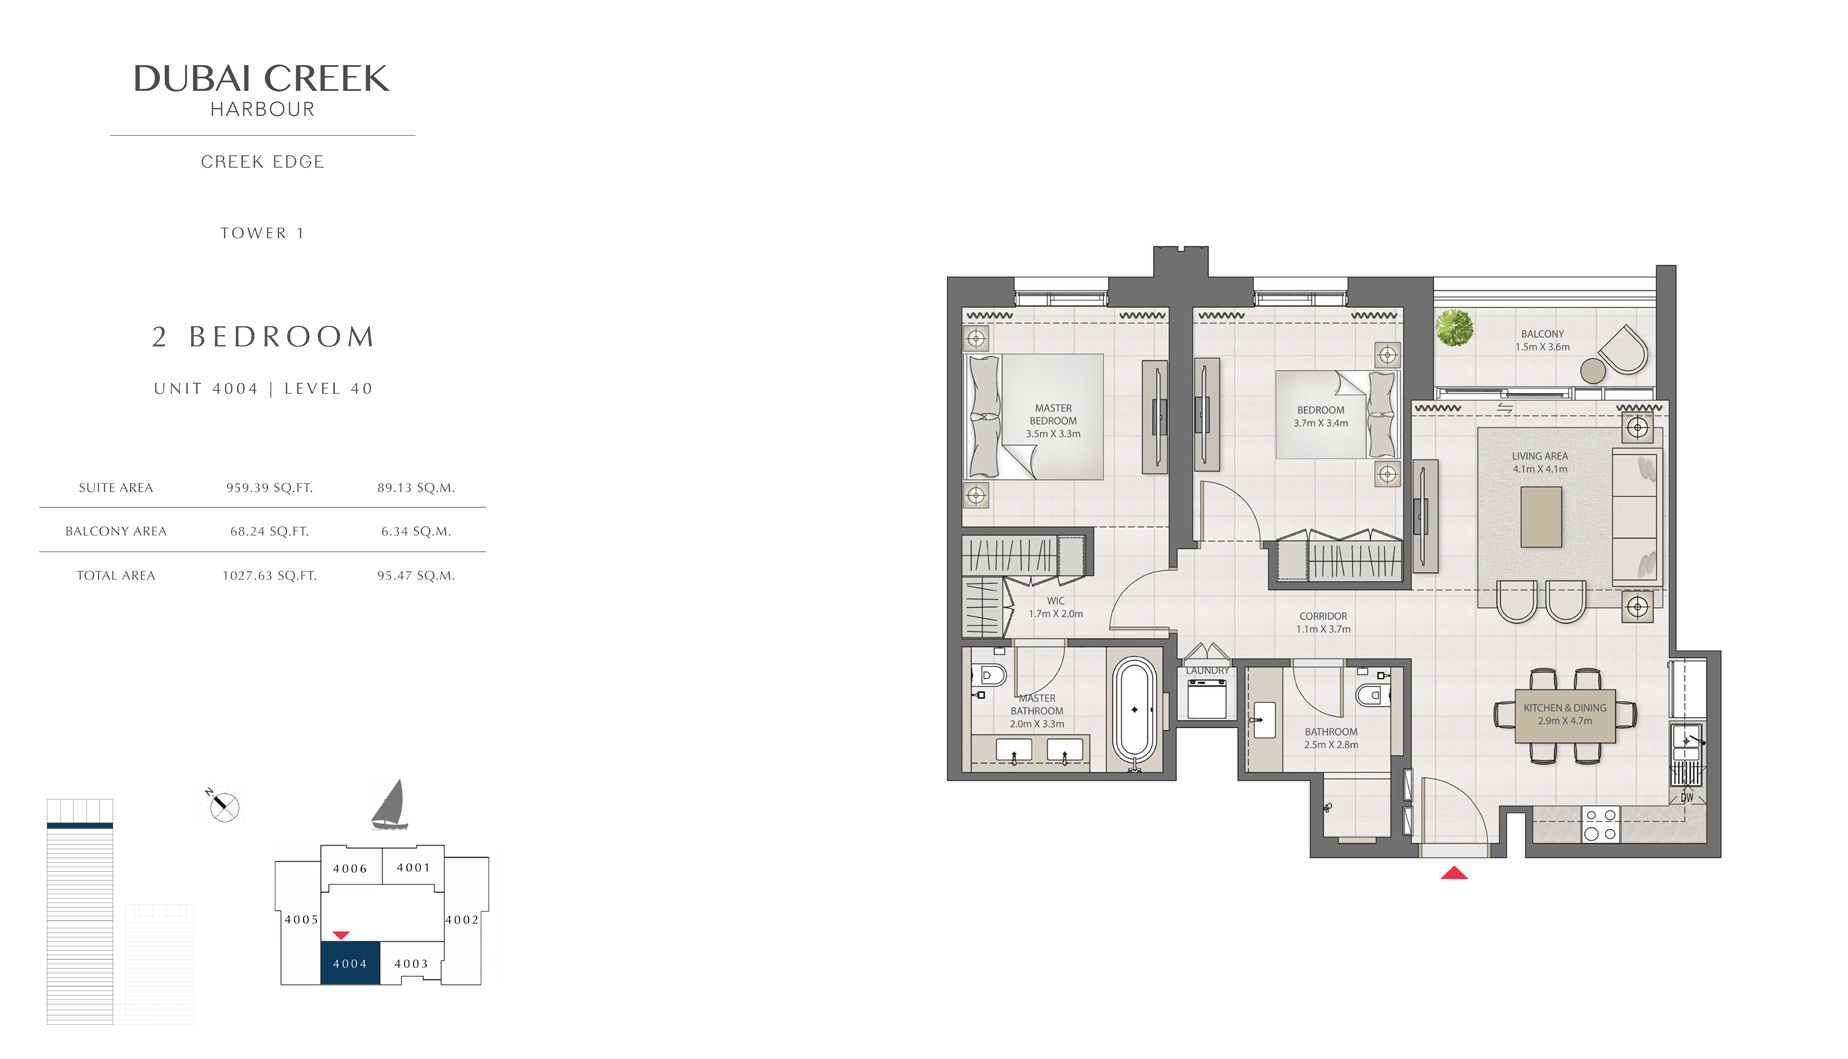 2 Bedroom Tower 1 Unit 4004 Level 40 Size 1027 sq.ft